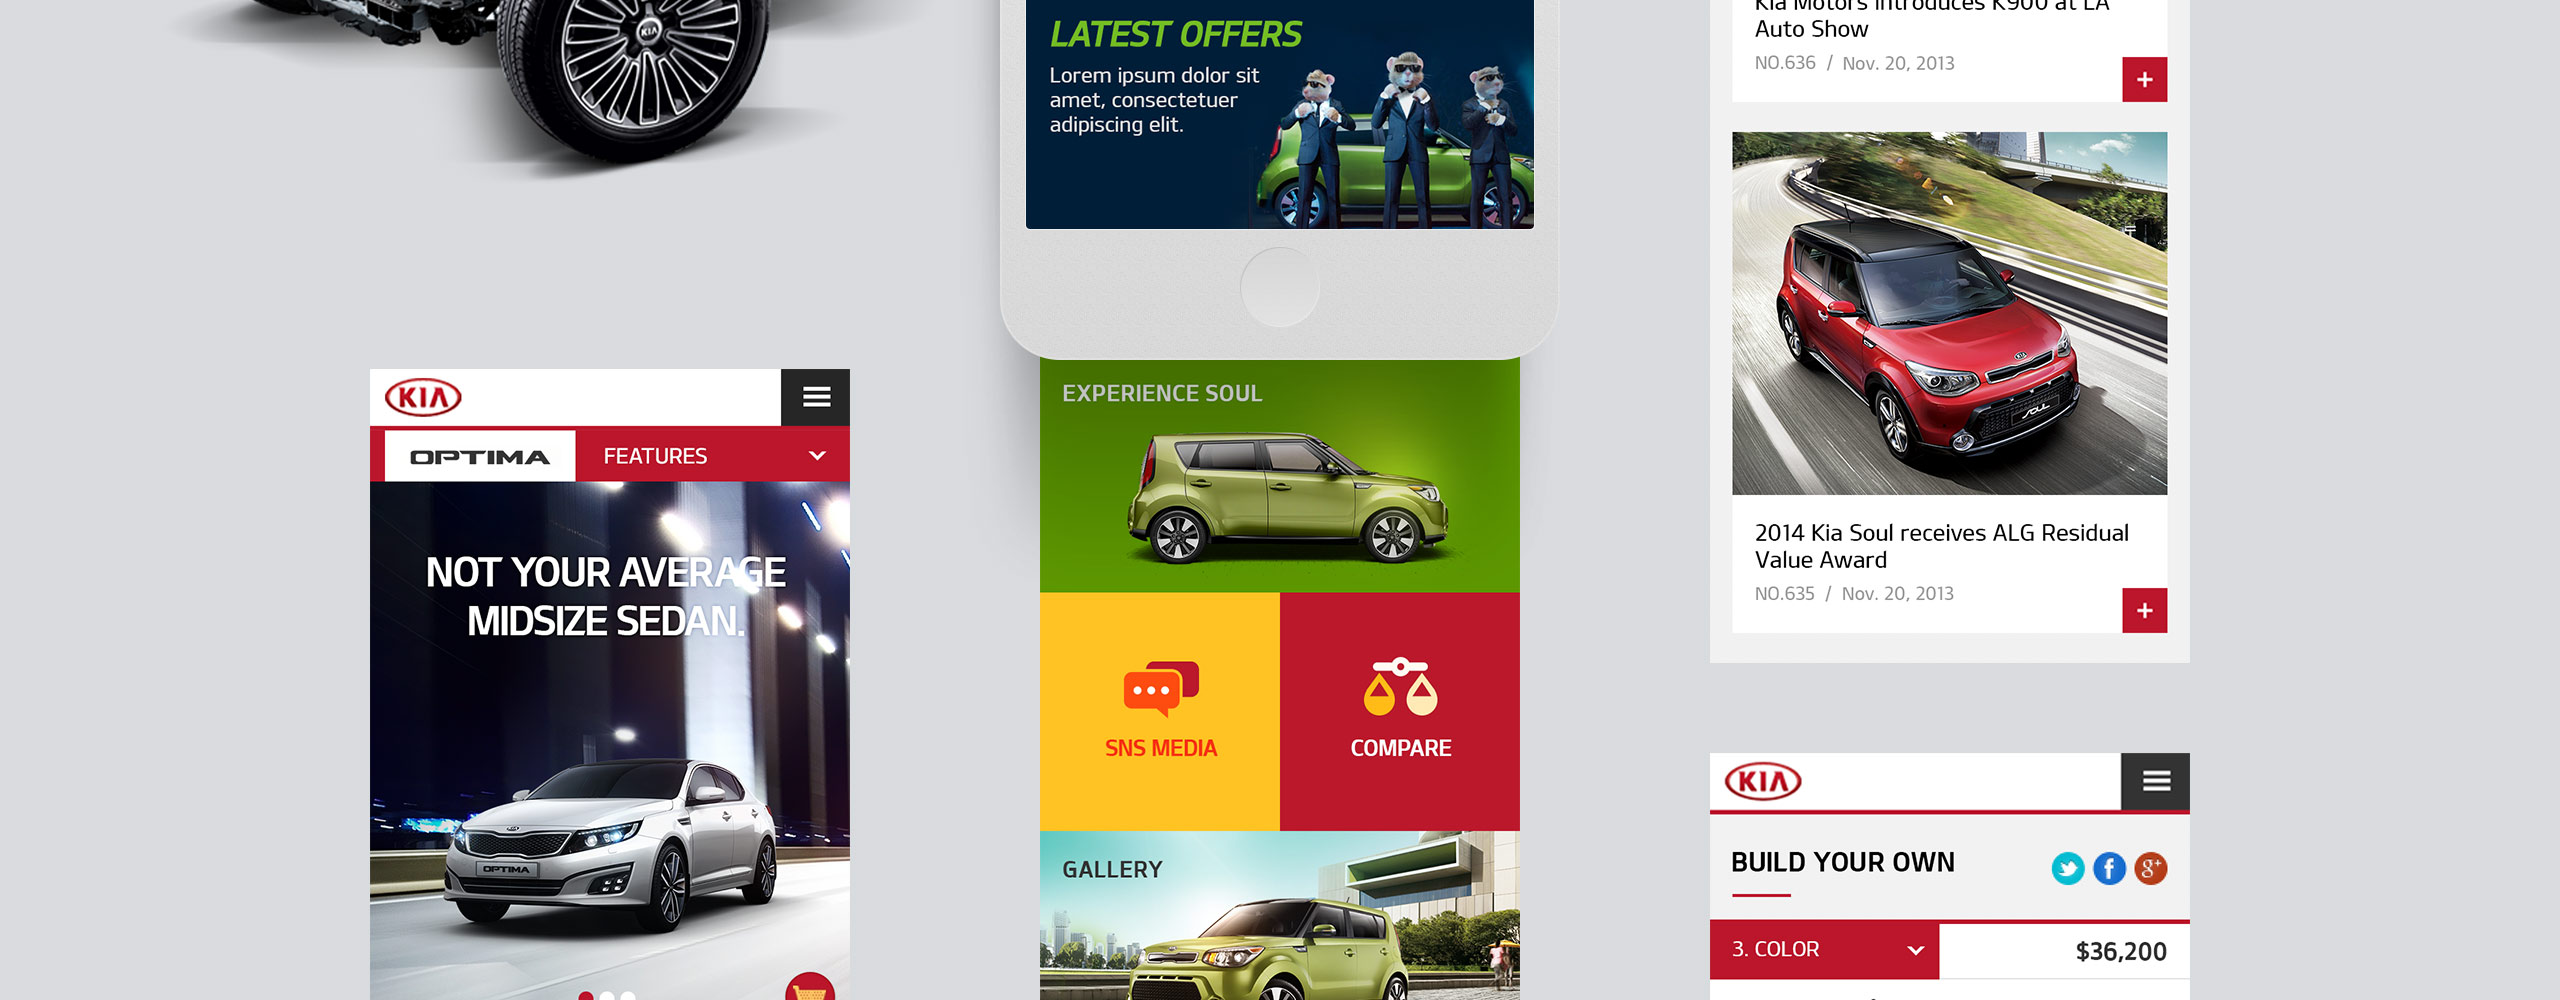 new cars website kia promise car uk motors deals slider used homepage